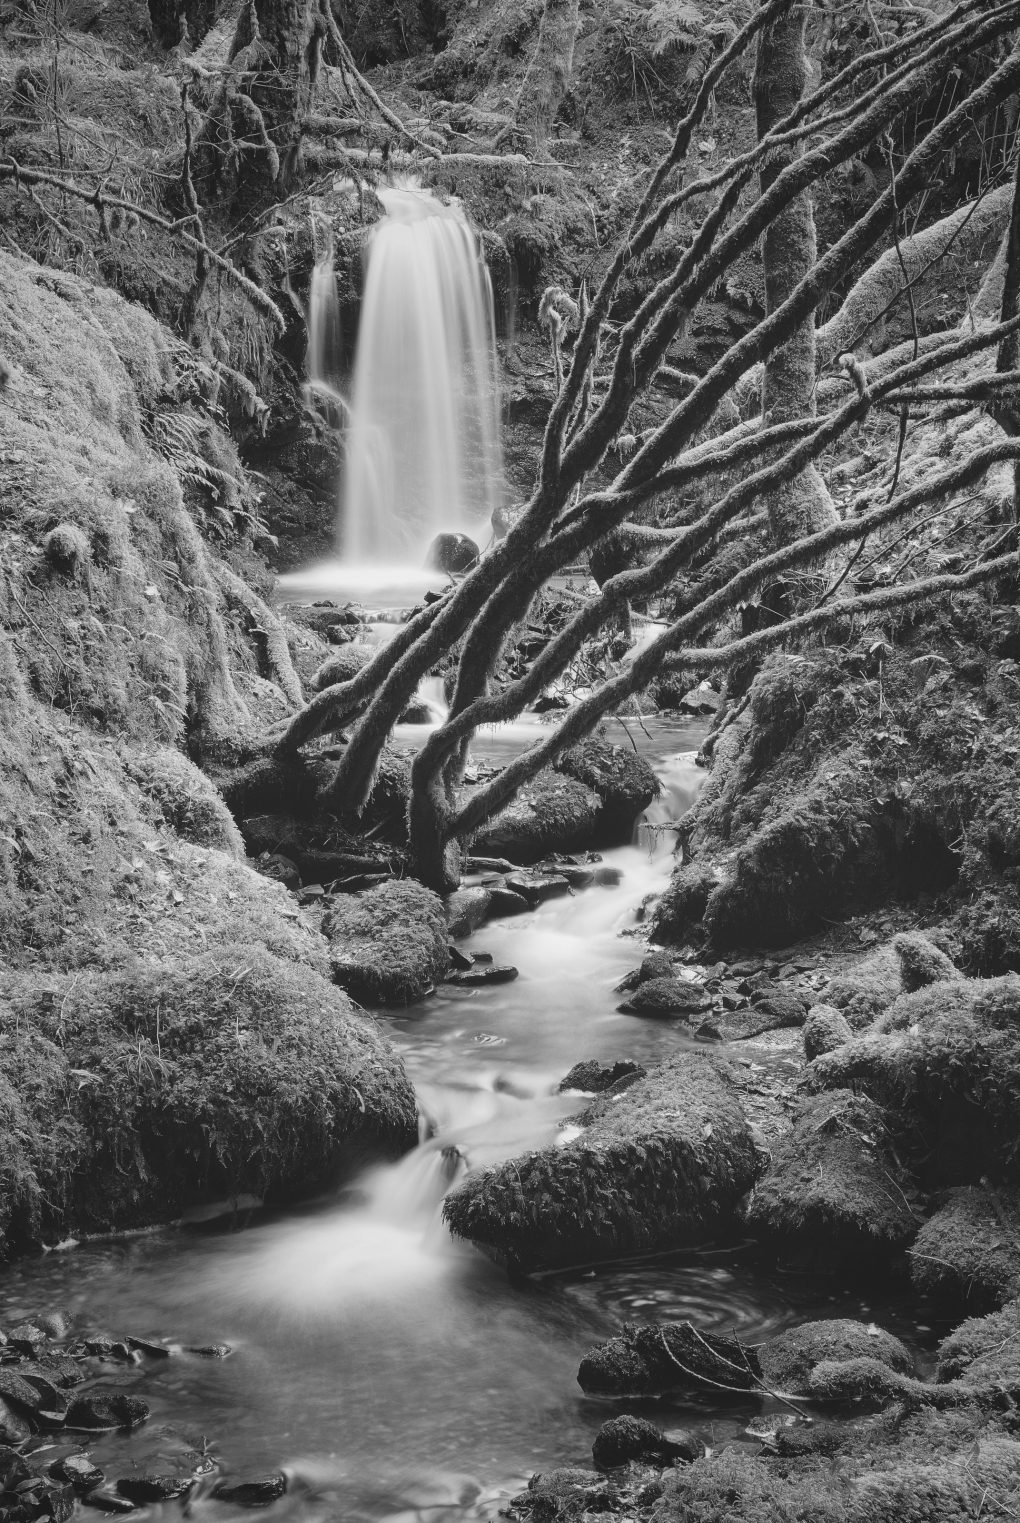 Rocks and trees and water and slippiness and moss and lichen and twigs and stones and wet stuff and...